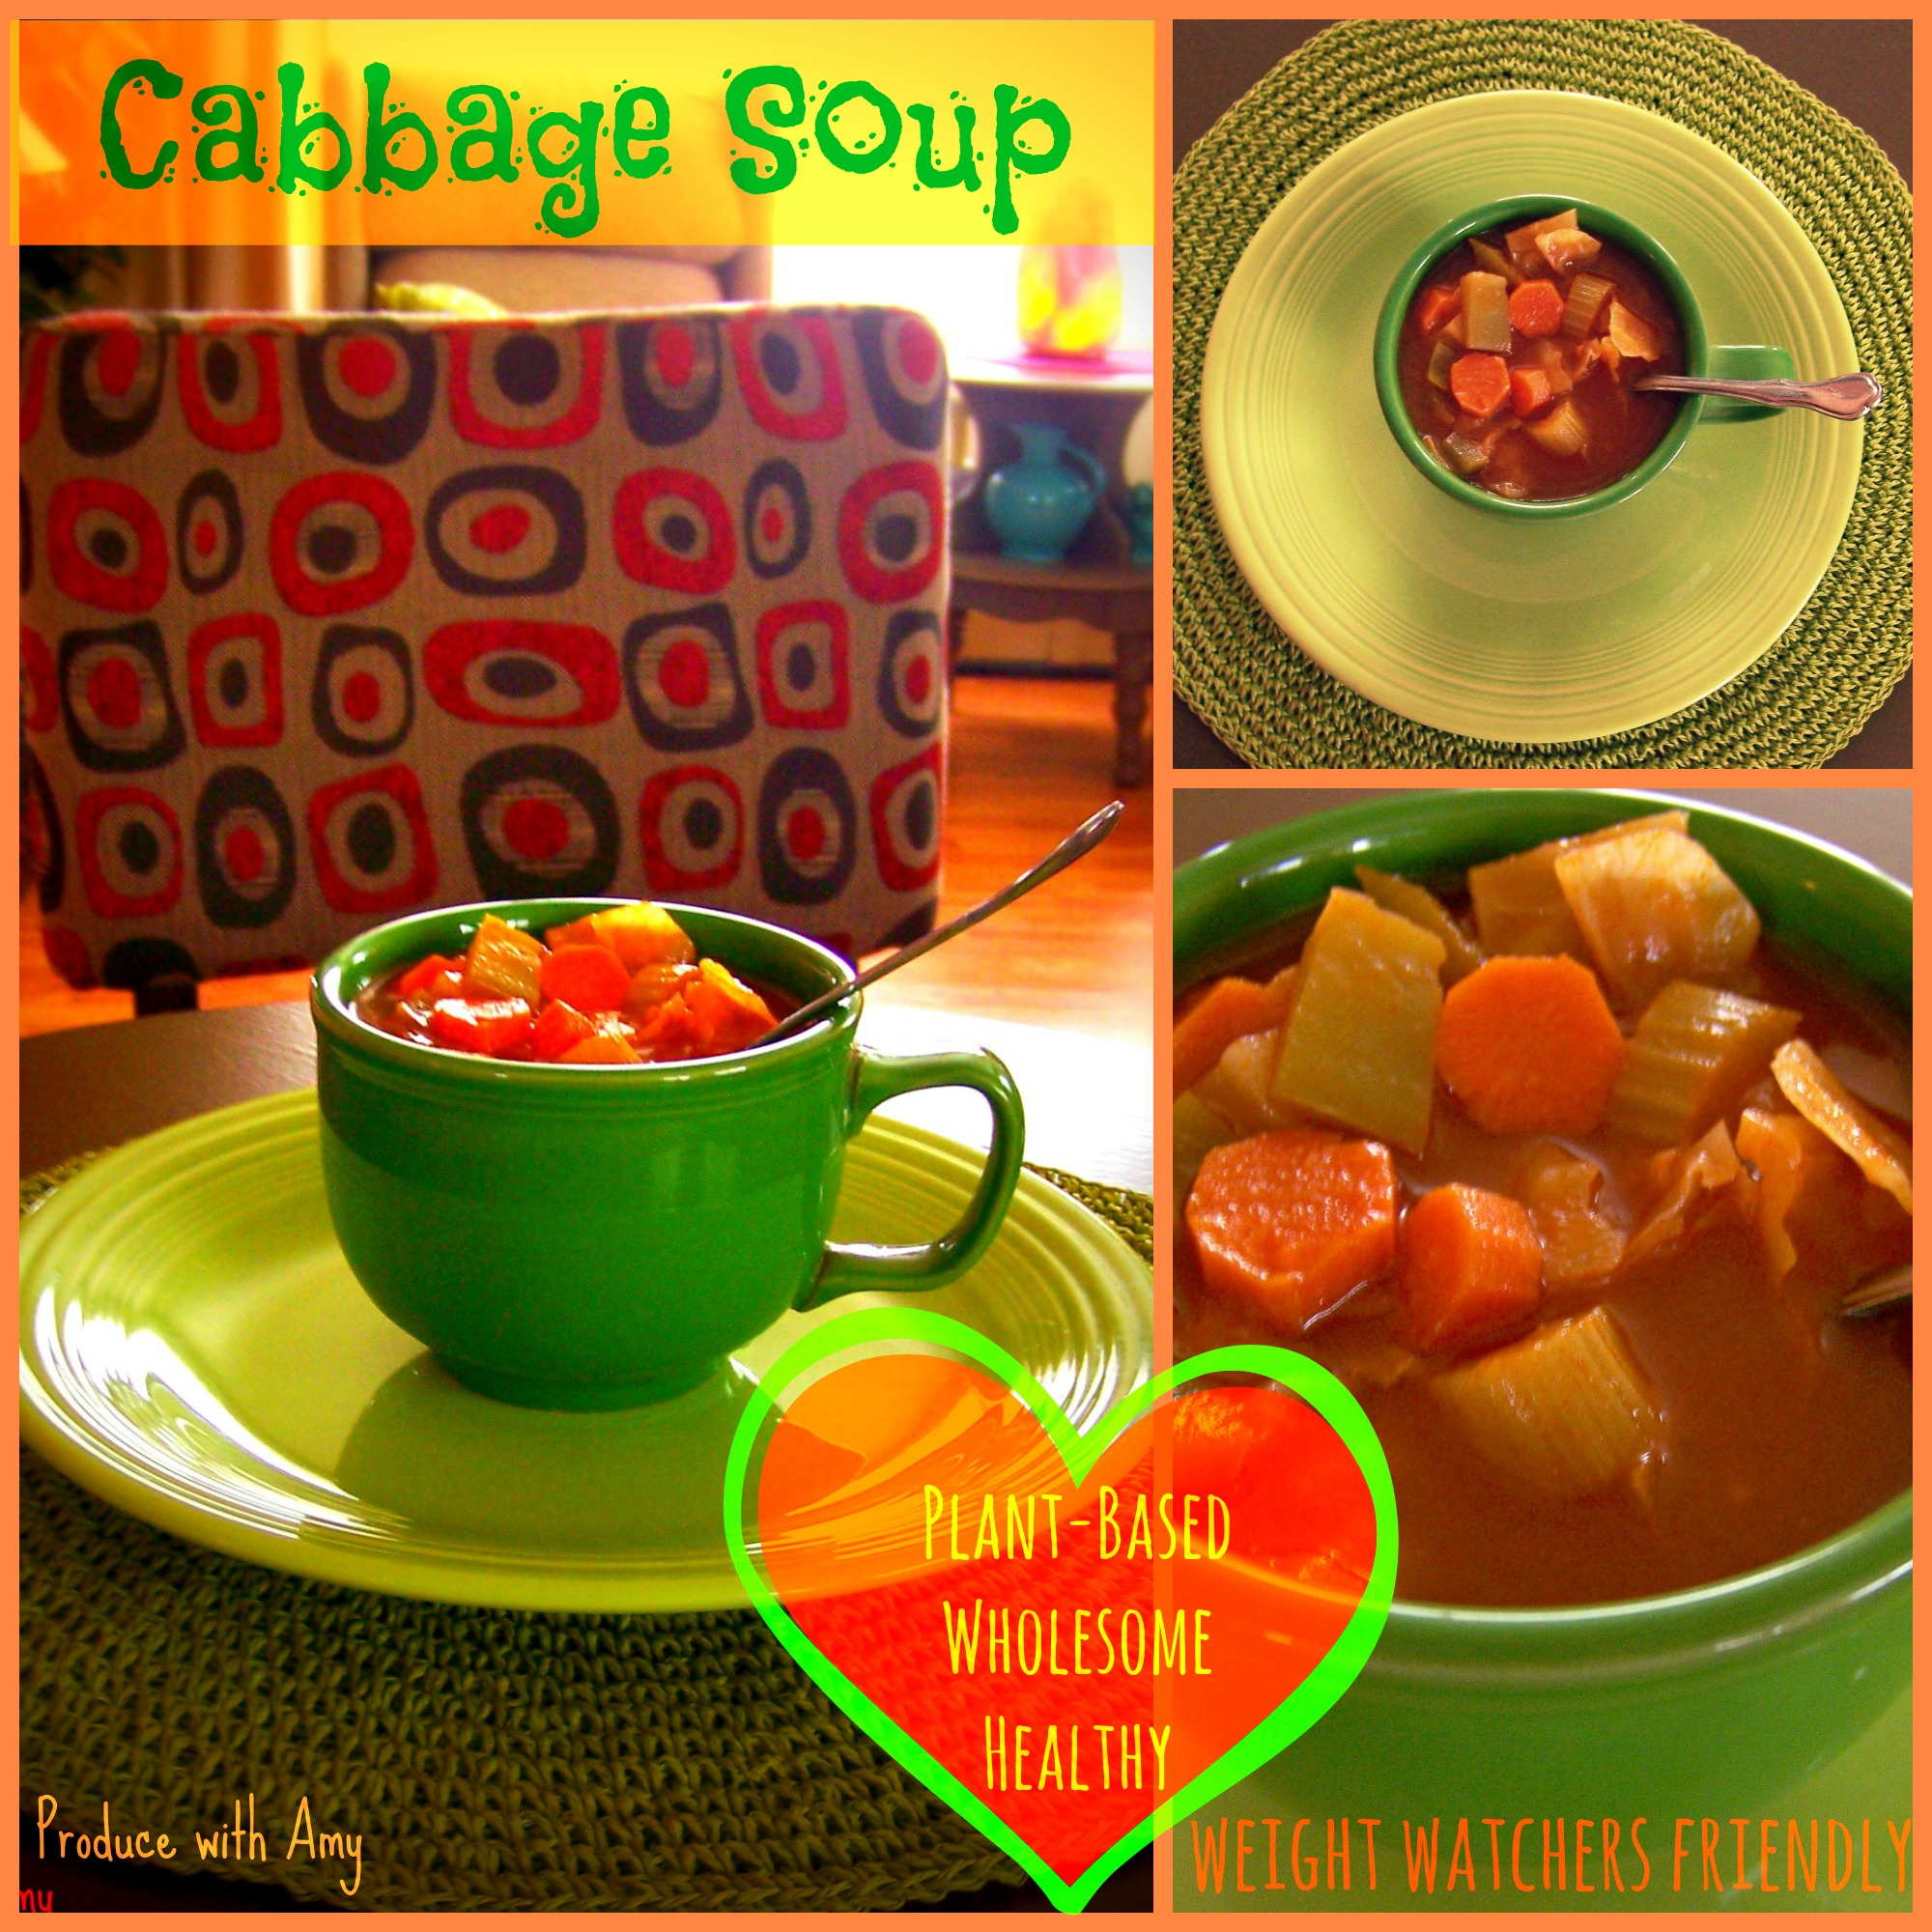 Weight Watchers Friendly Cabbage Soup